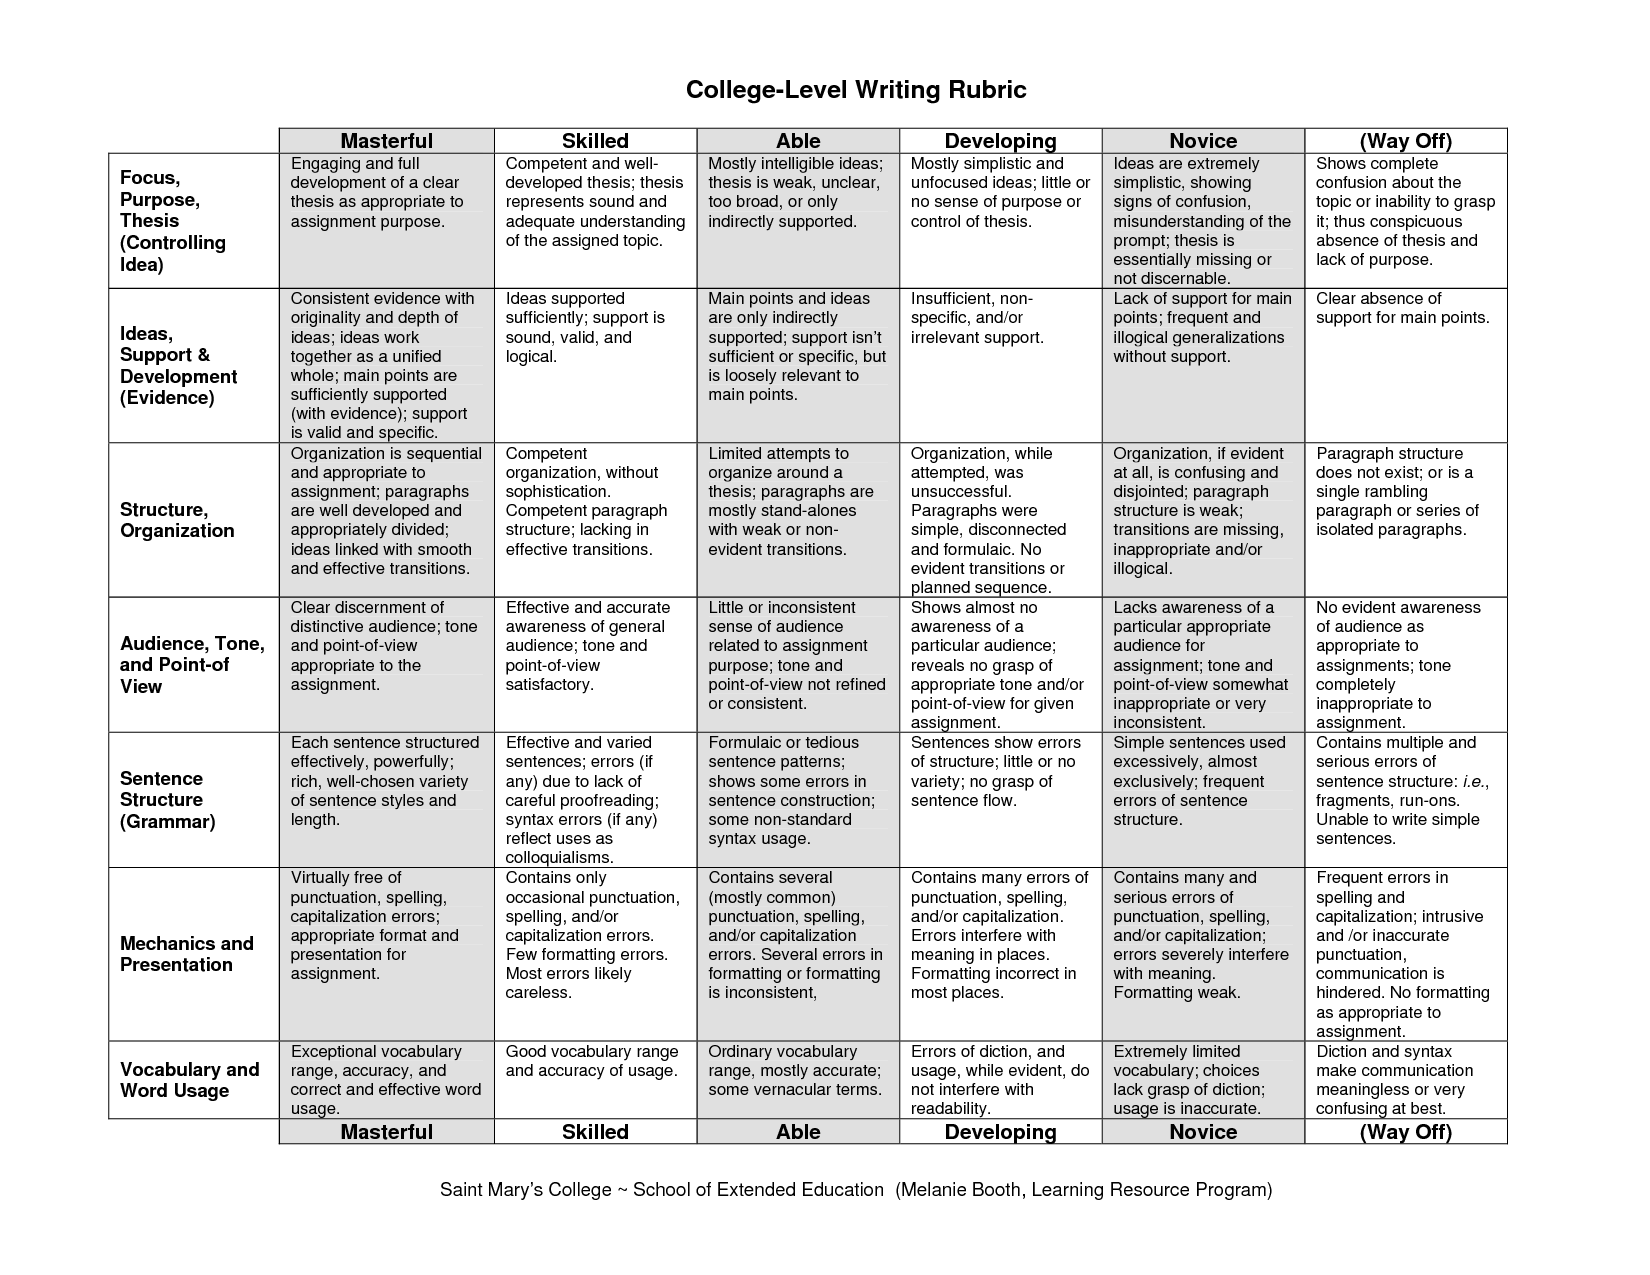 Research paper service rubric high school doc